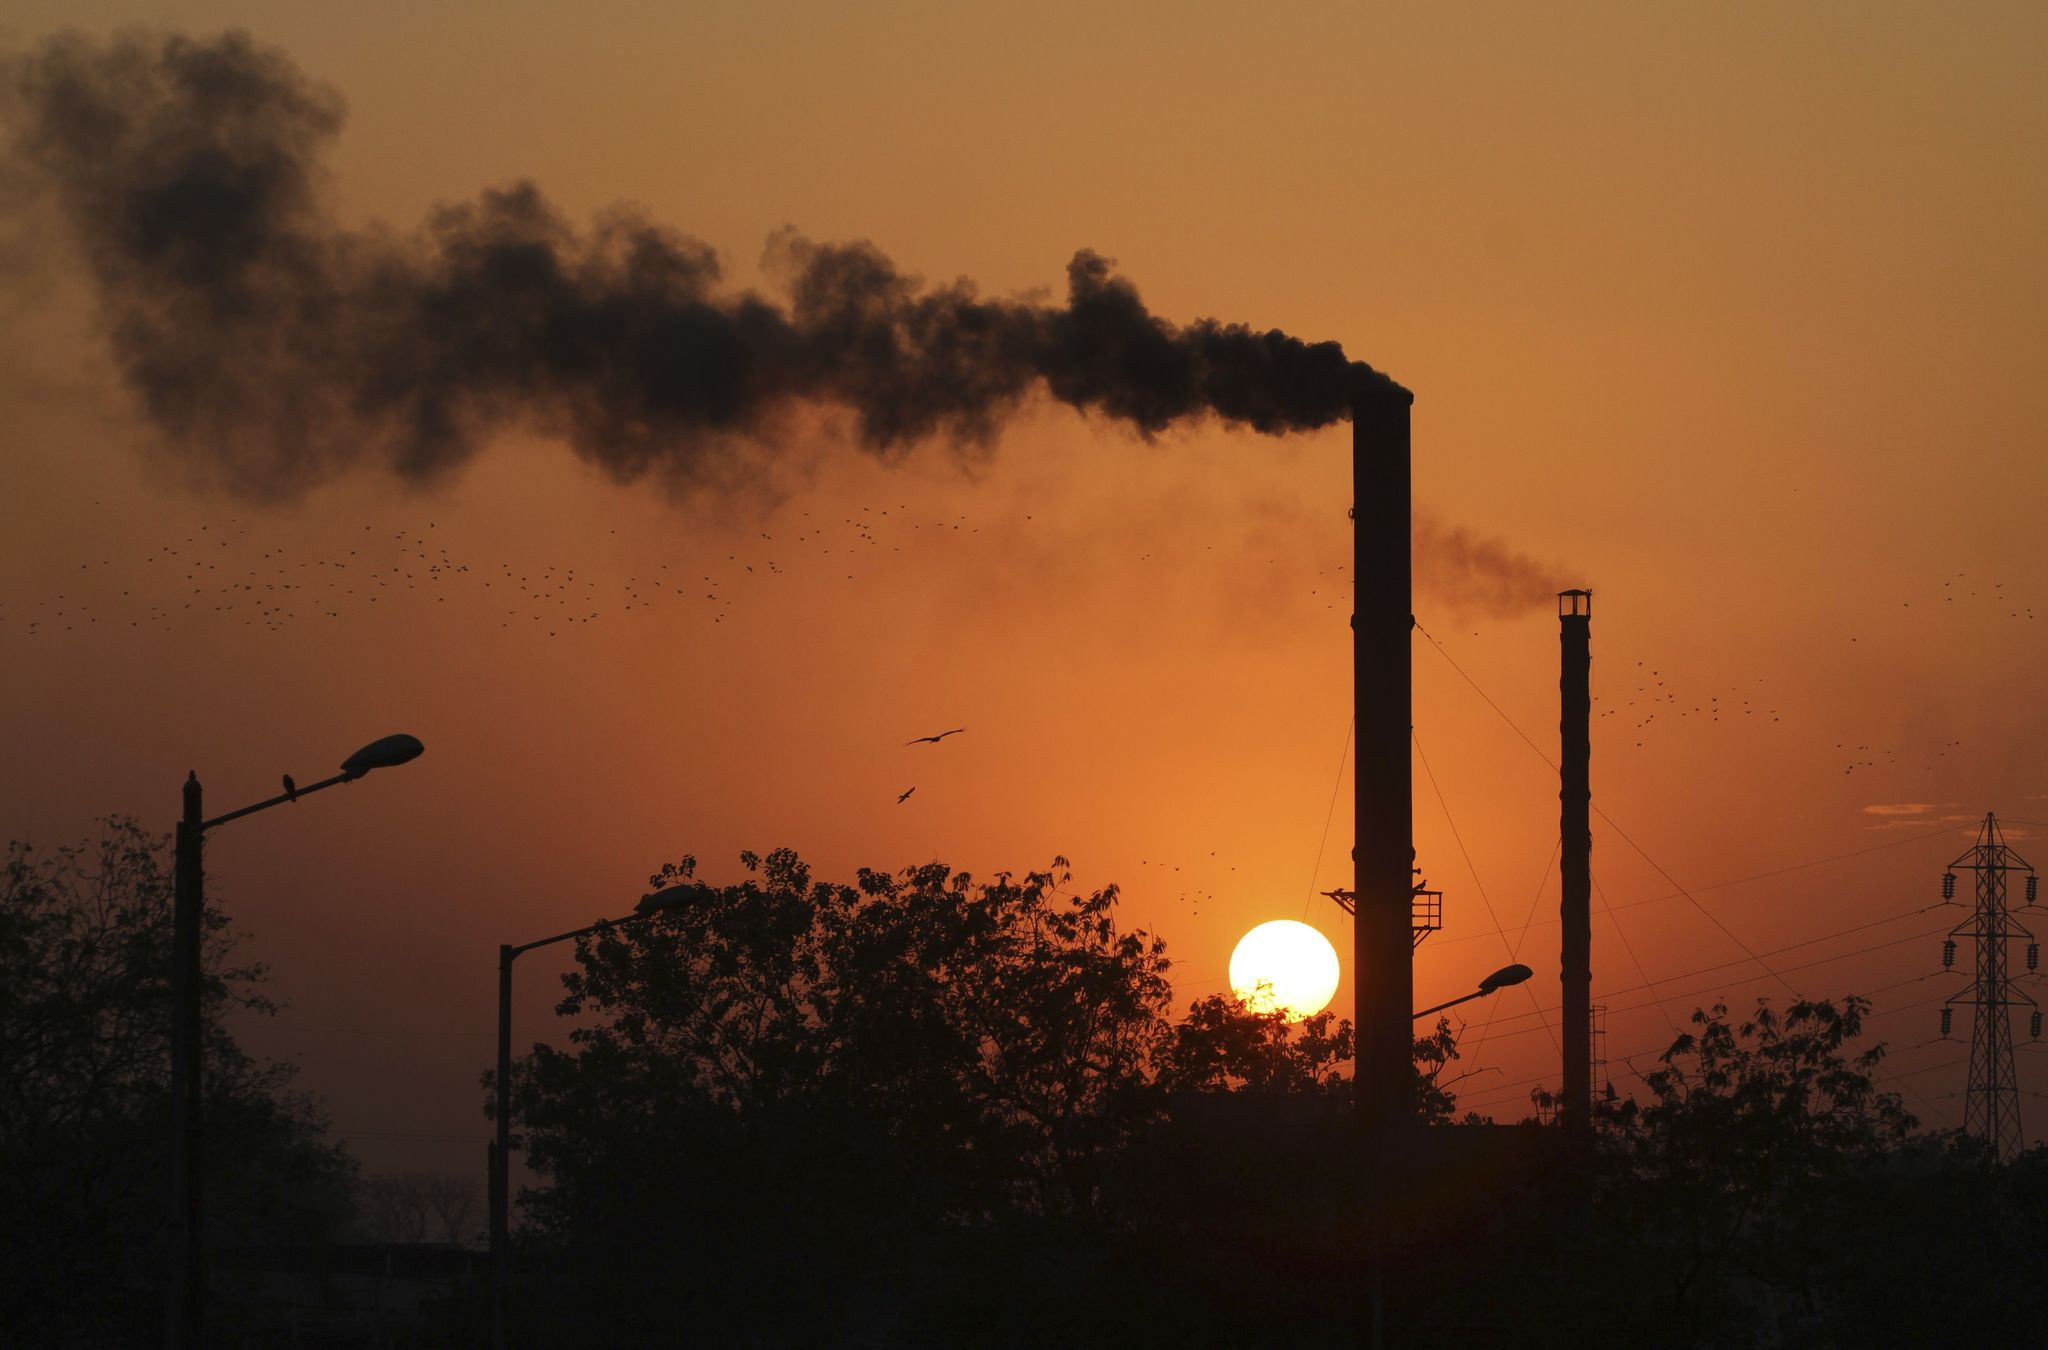 Third year of flat global carbon emissions fuels resistance to Paris climate accord